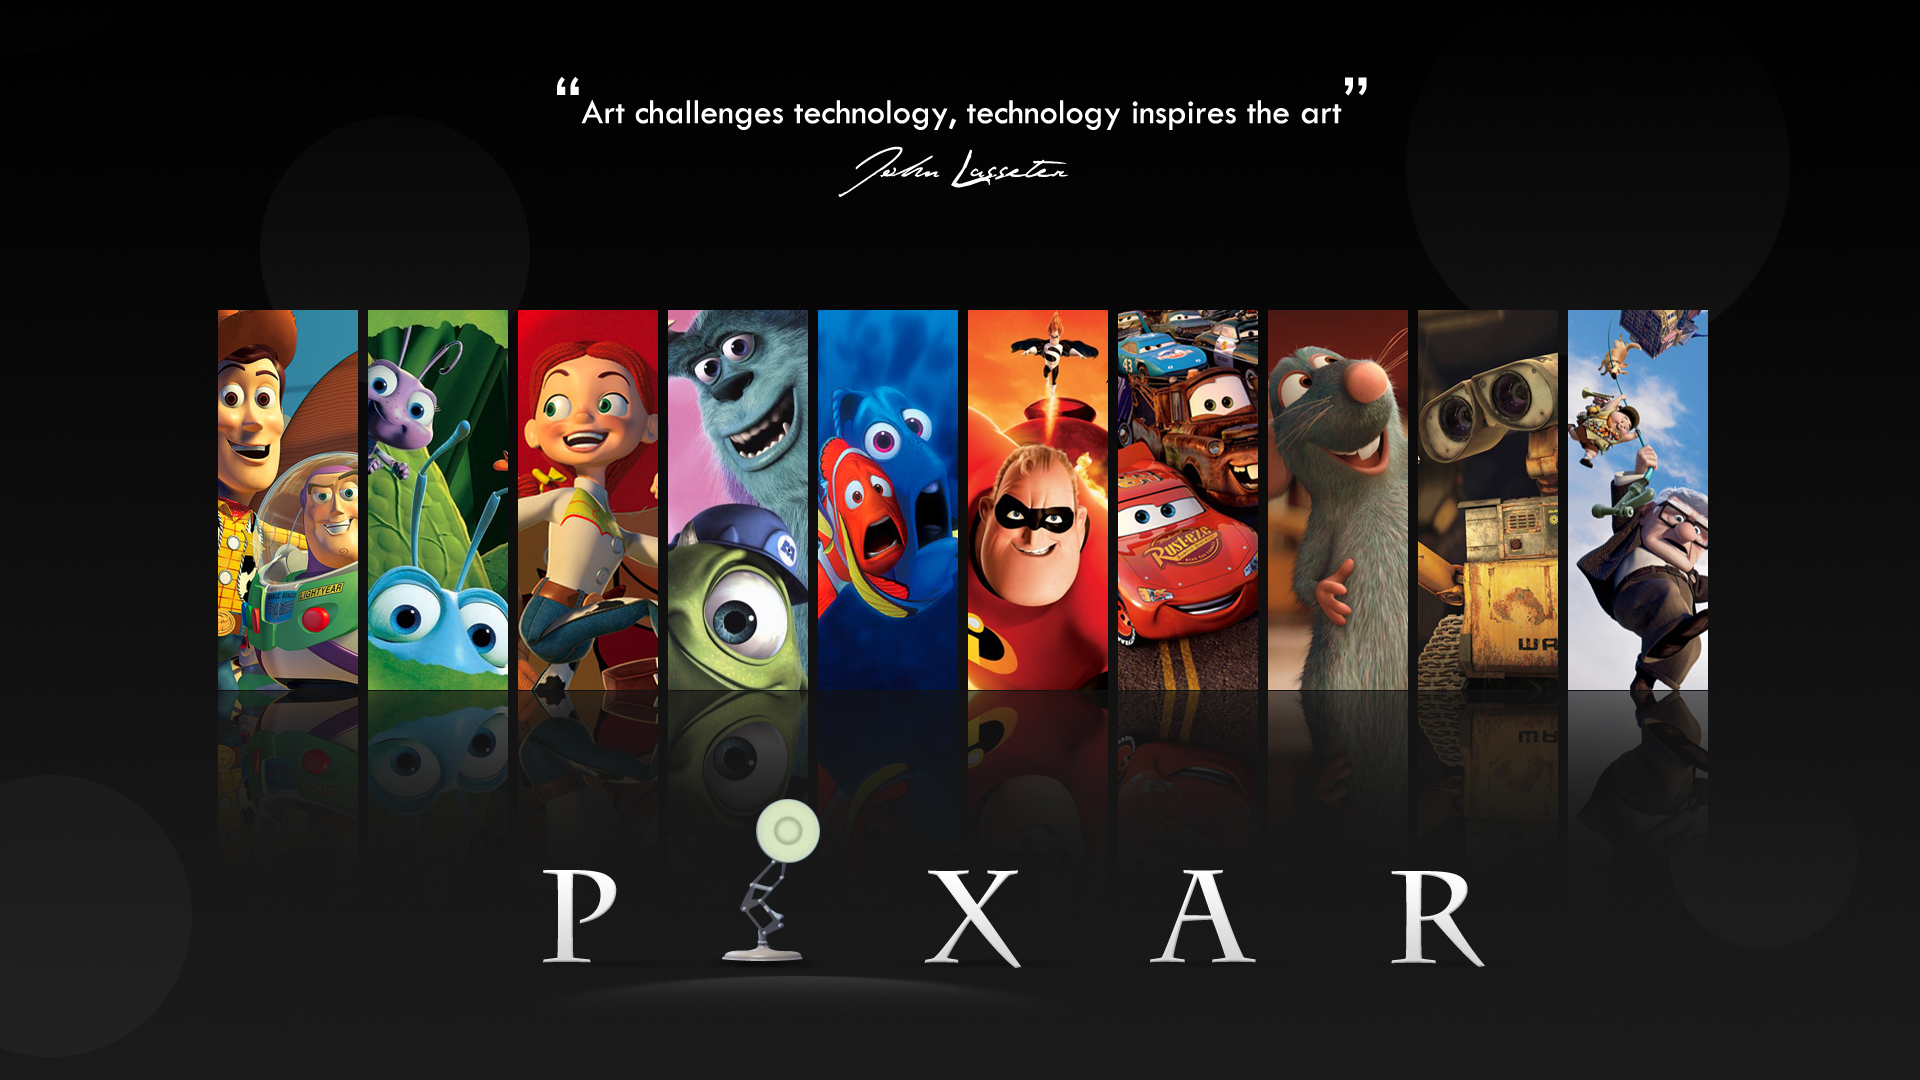 Best Pixar animated movies!